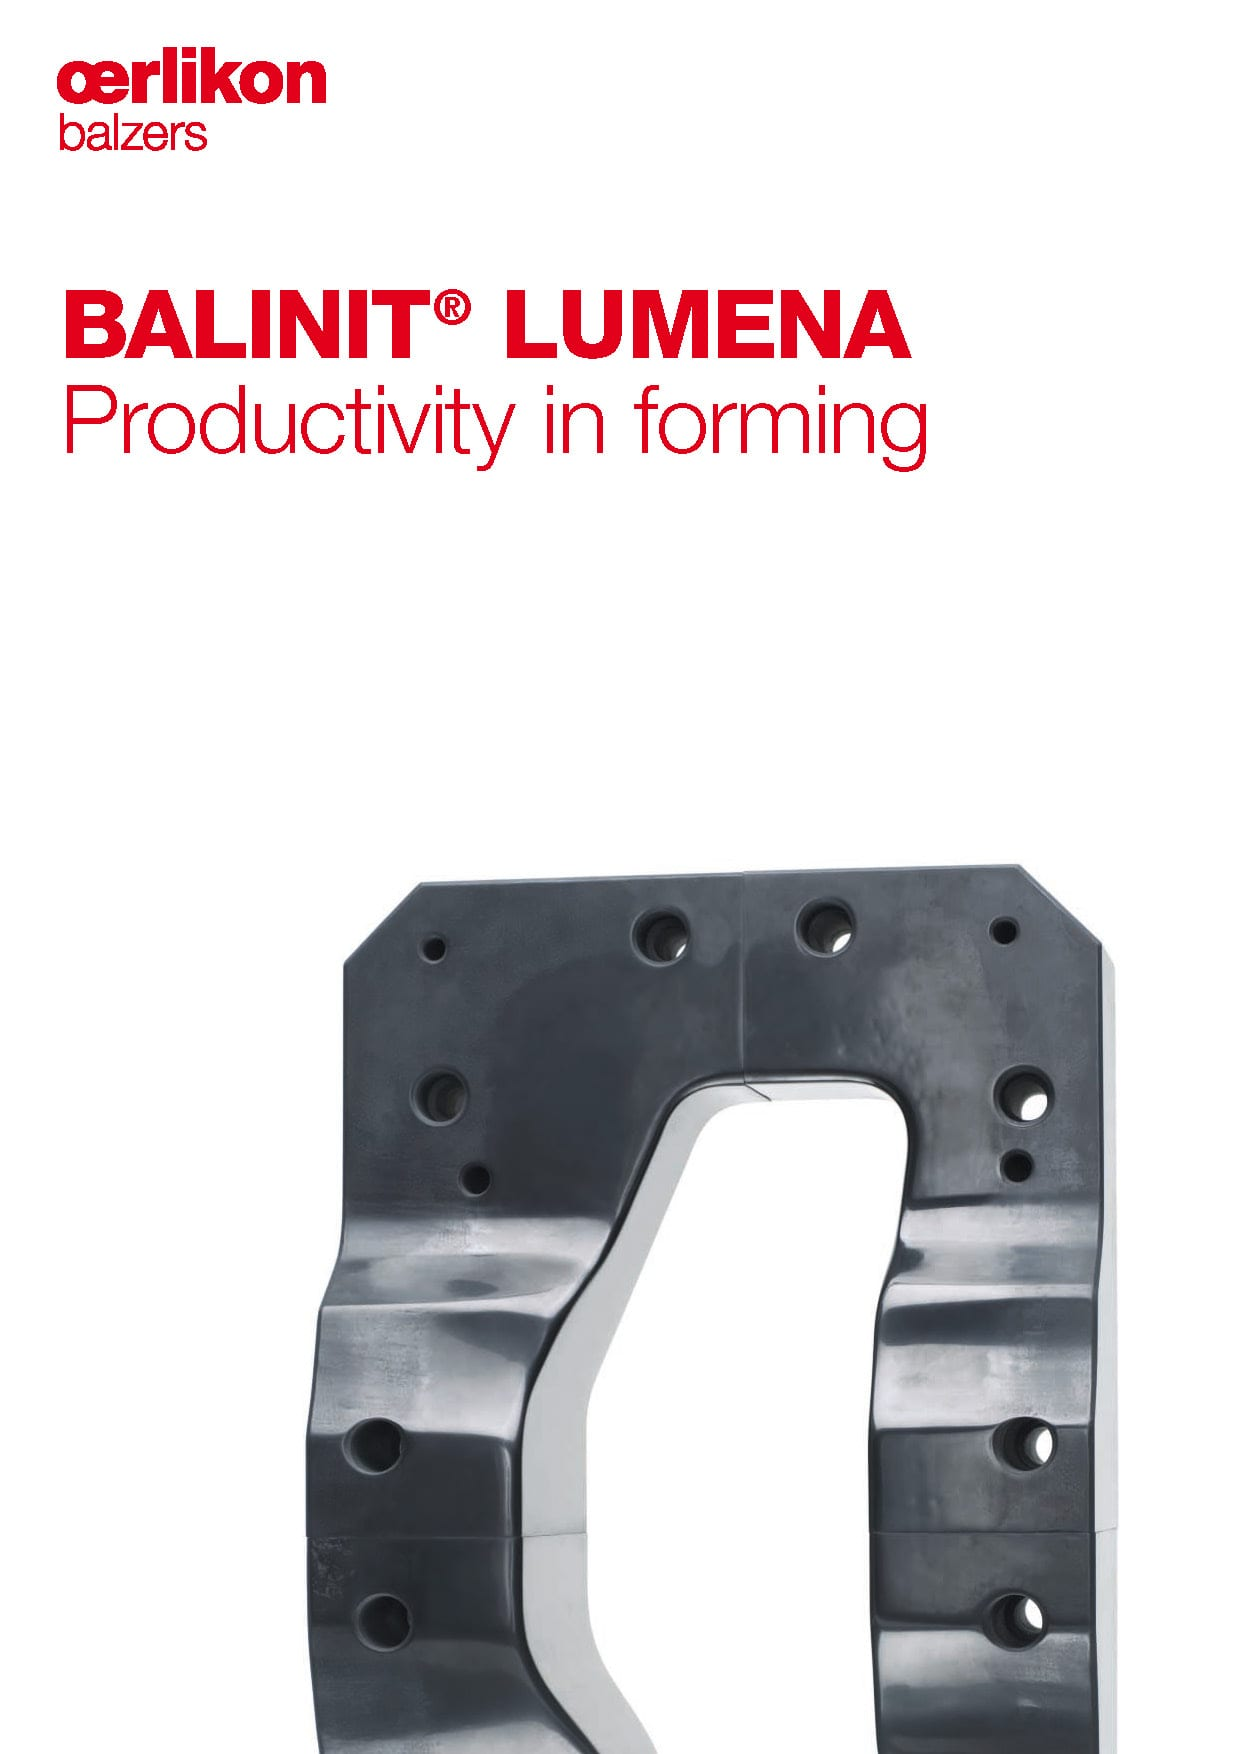 BALINIT® LUMENA, Productivity in forming